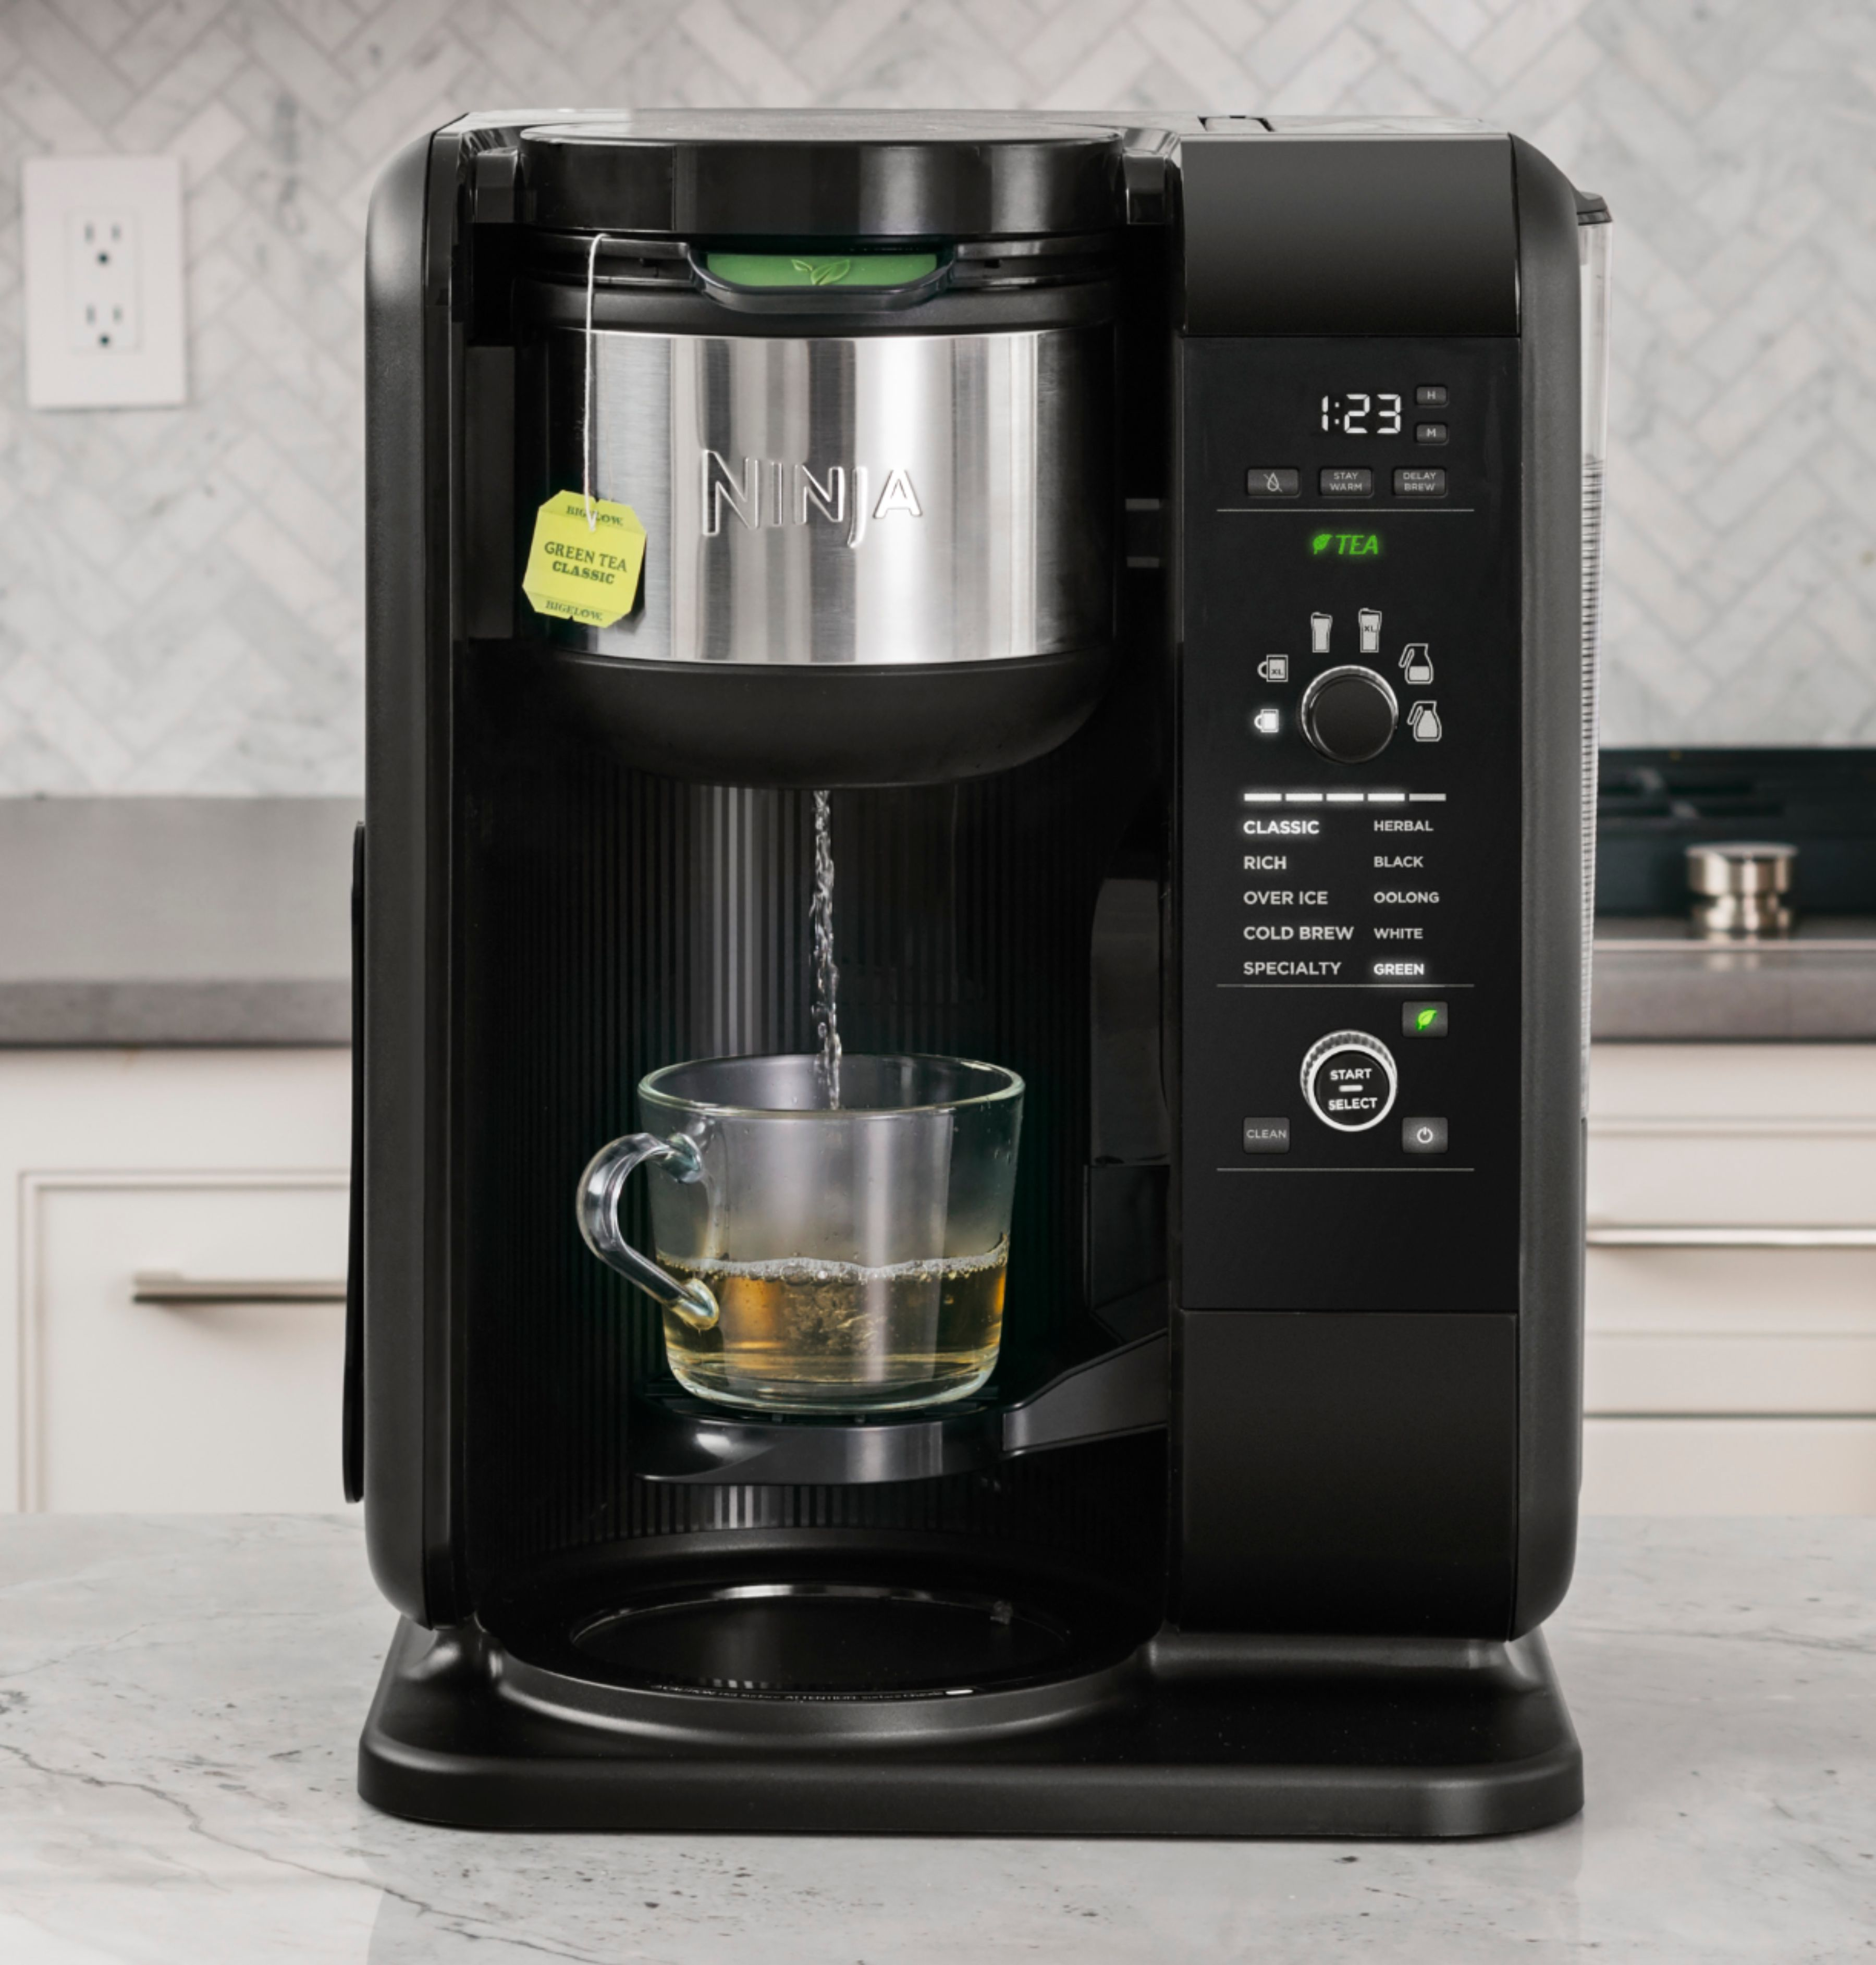 Ninja Hot & Cold Brew 10-Cup Coffee Maker Black/Stainless ...